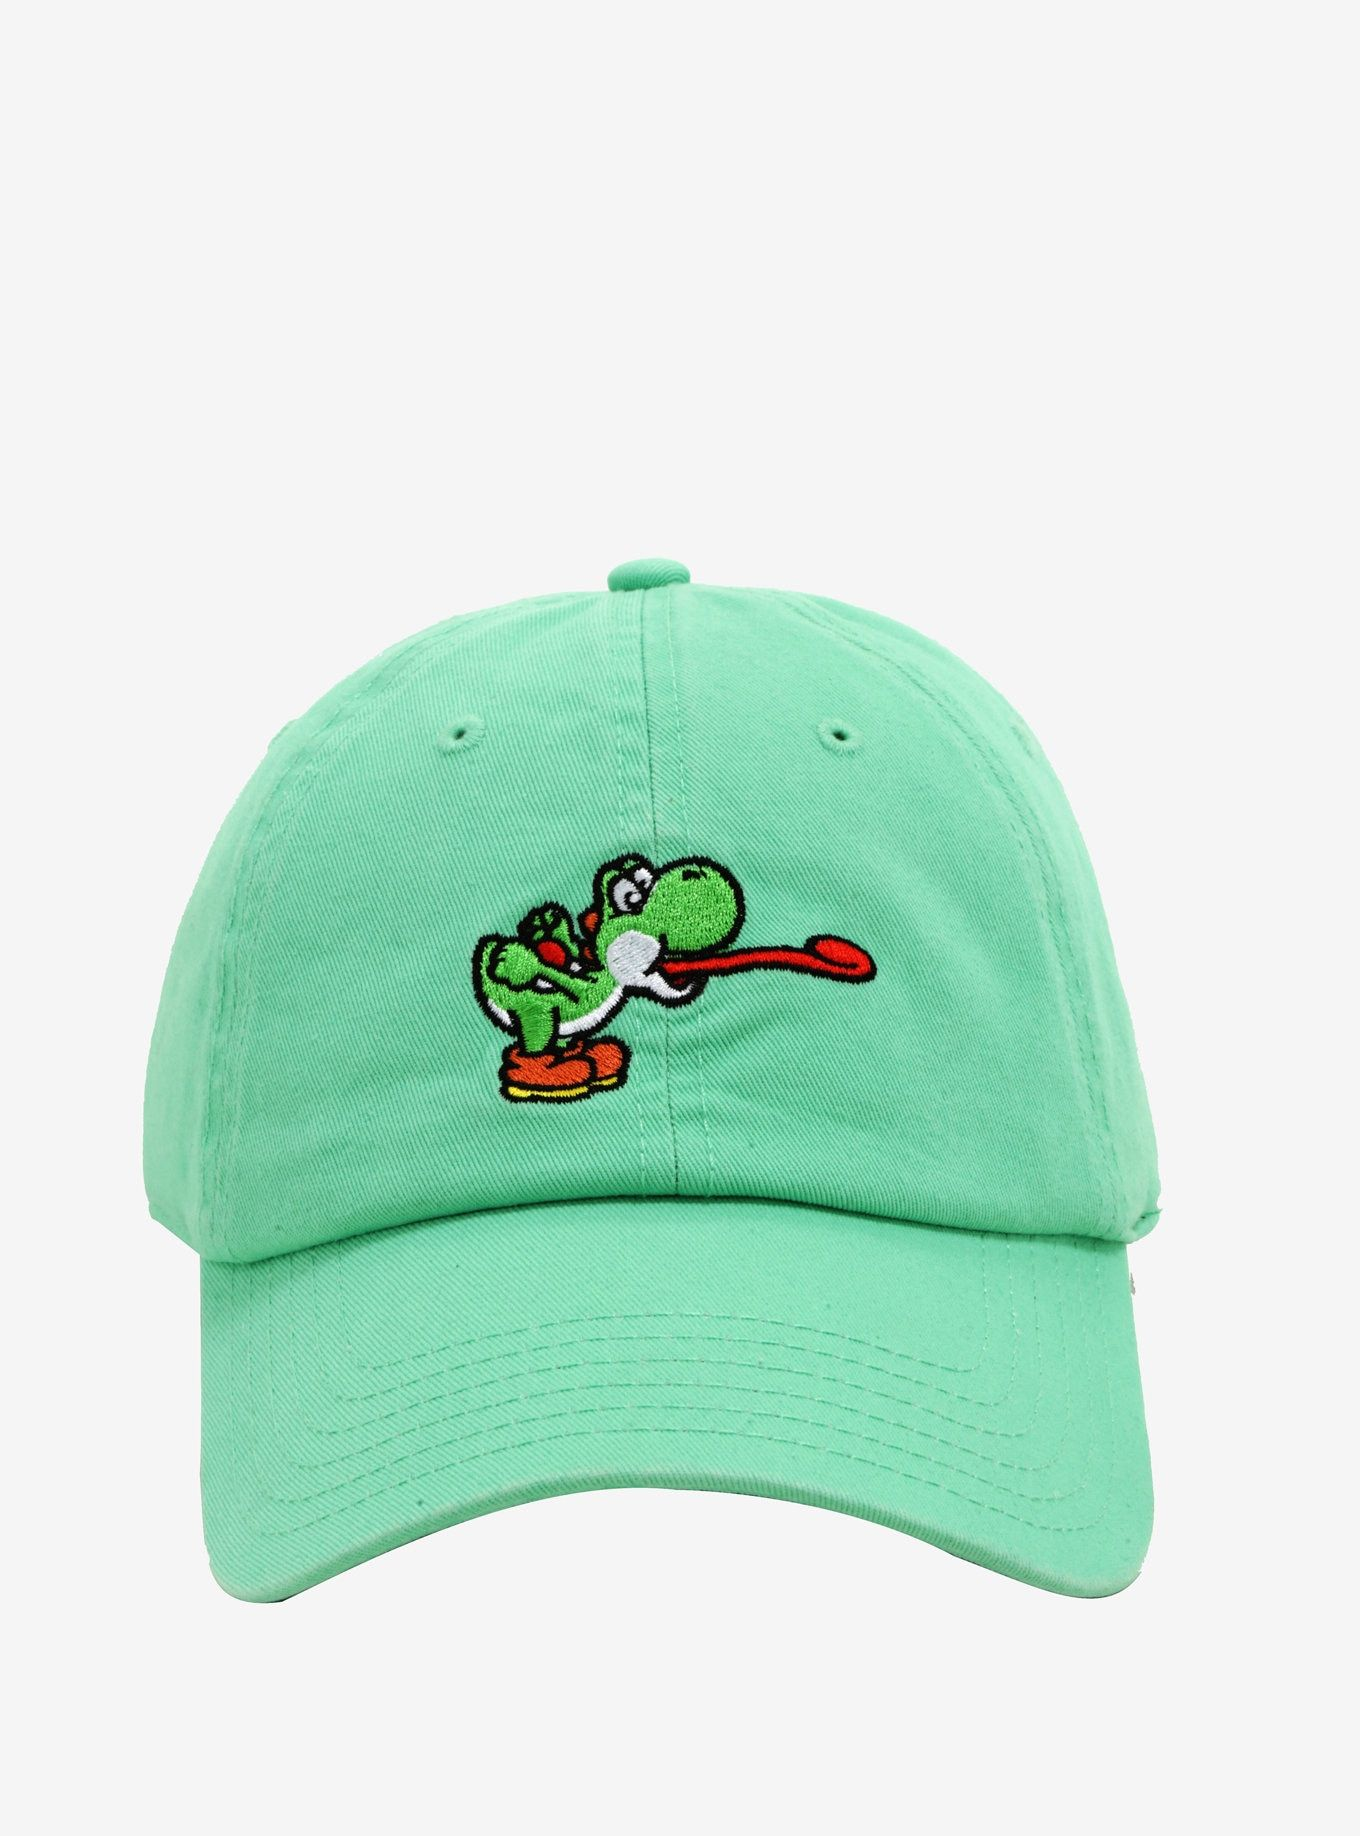 LargeImages Dad Hats 00375a32d6c5